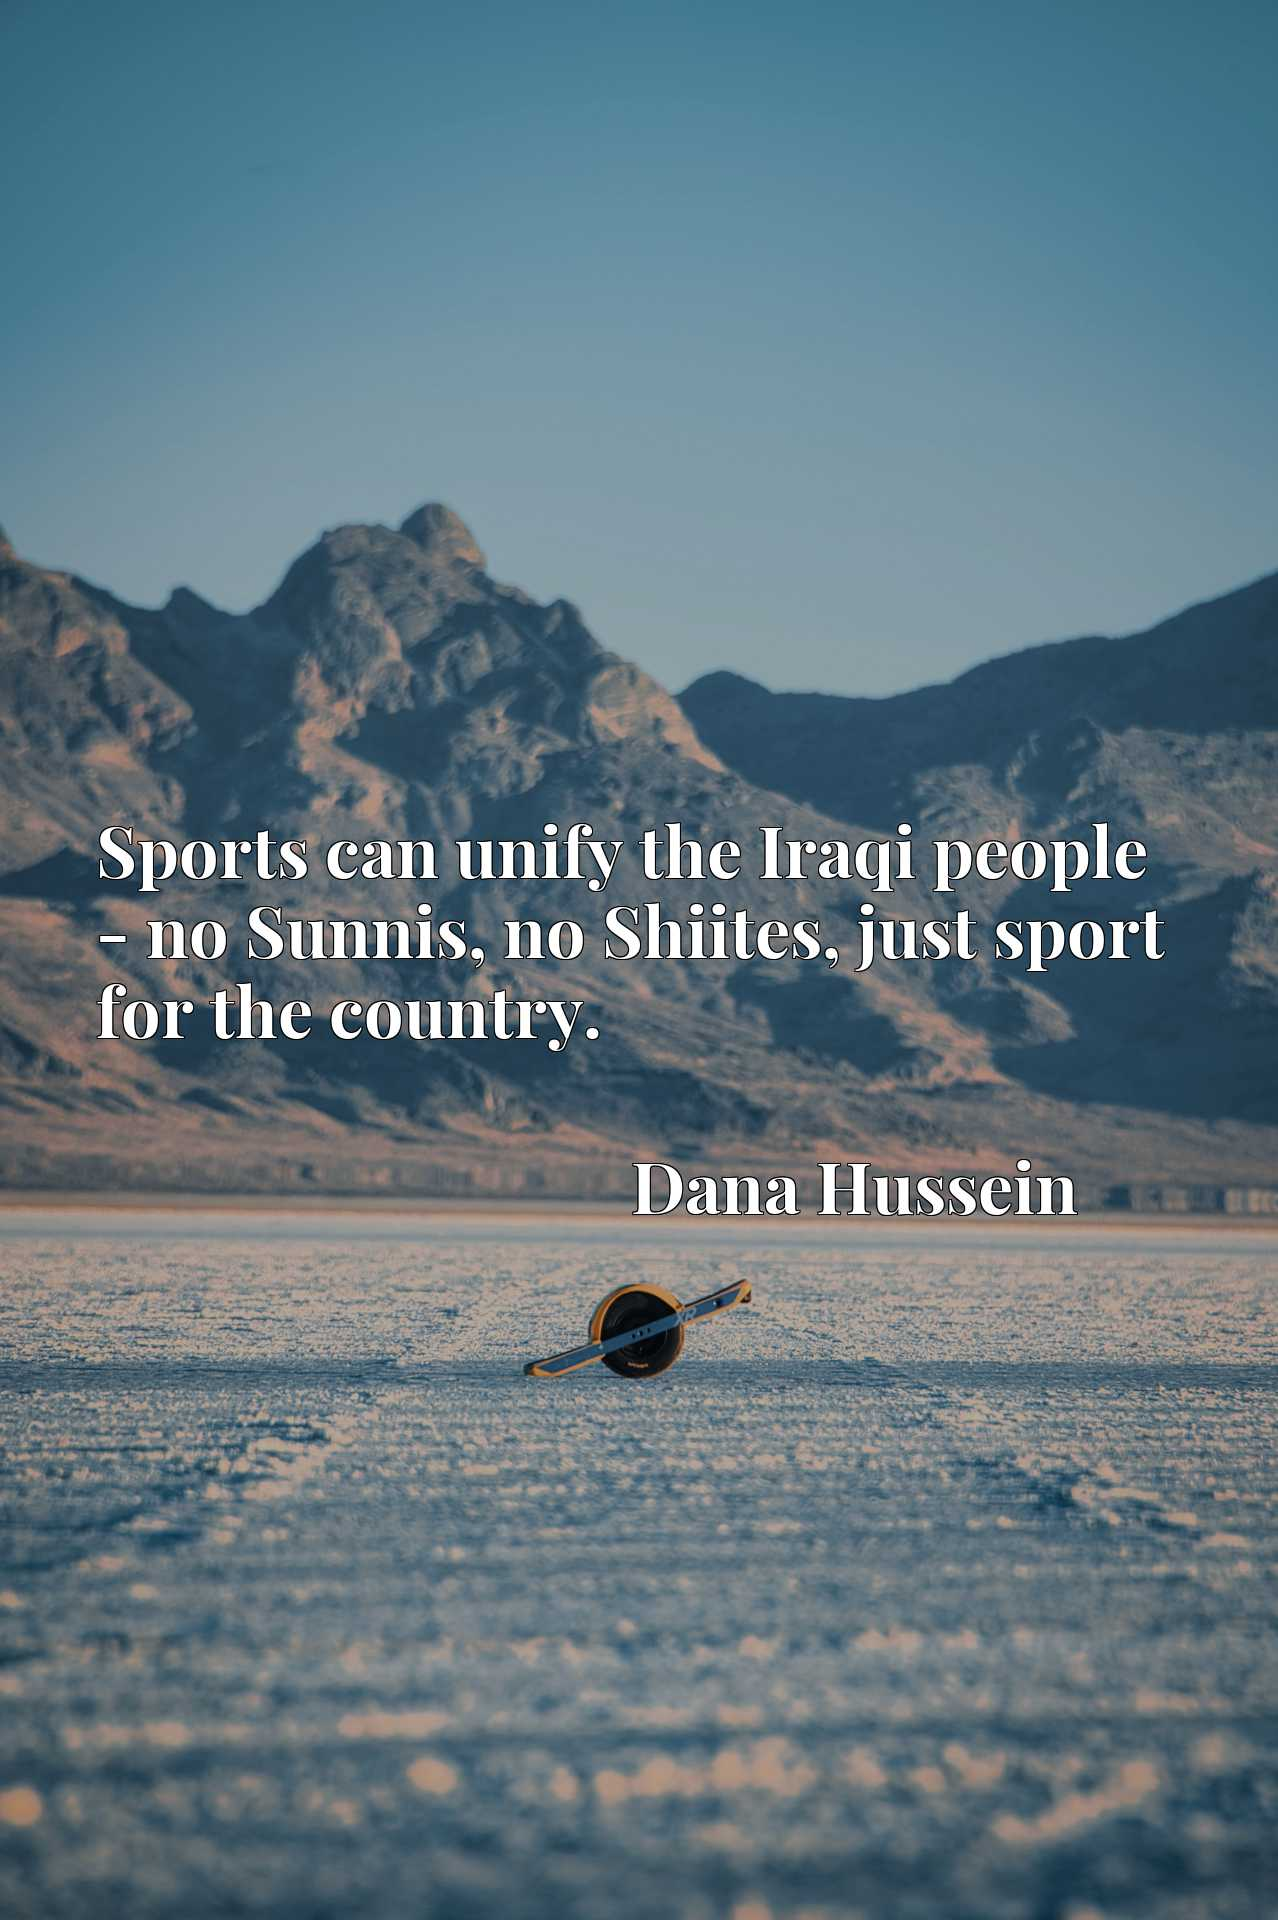 Quote Picture :Sports can unify the Iraqi people - no Sunnis, no Shiites, just sport for the country.